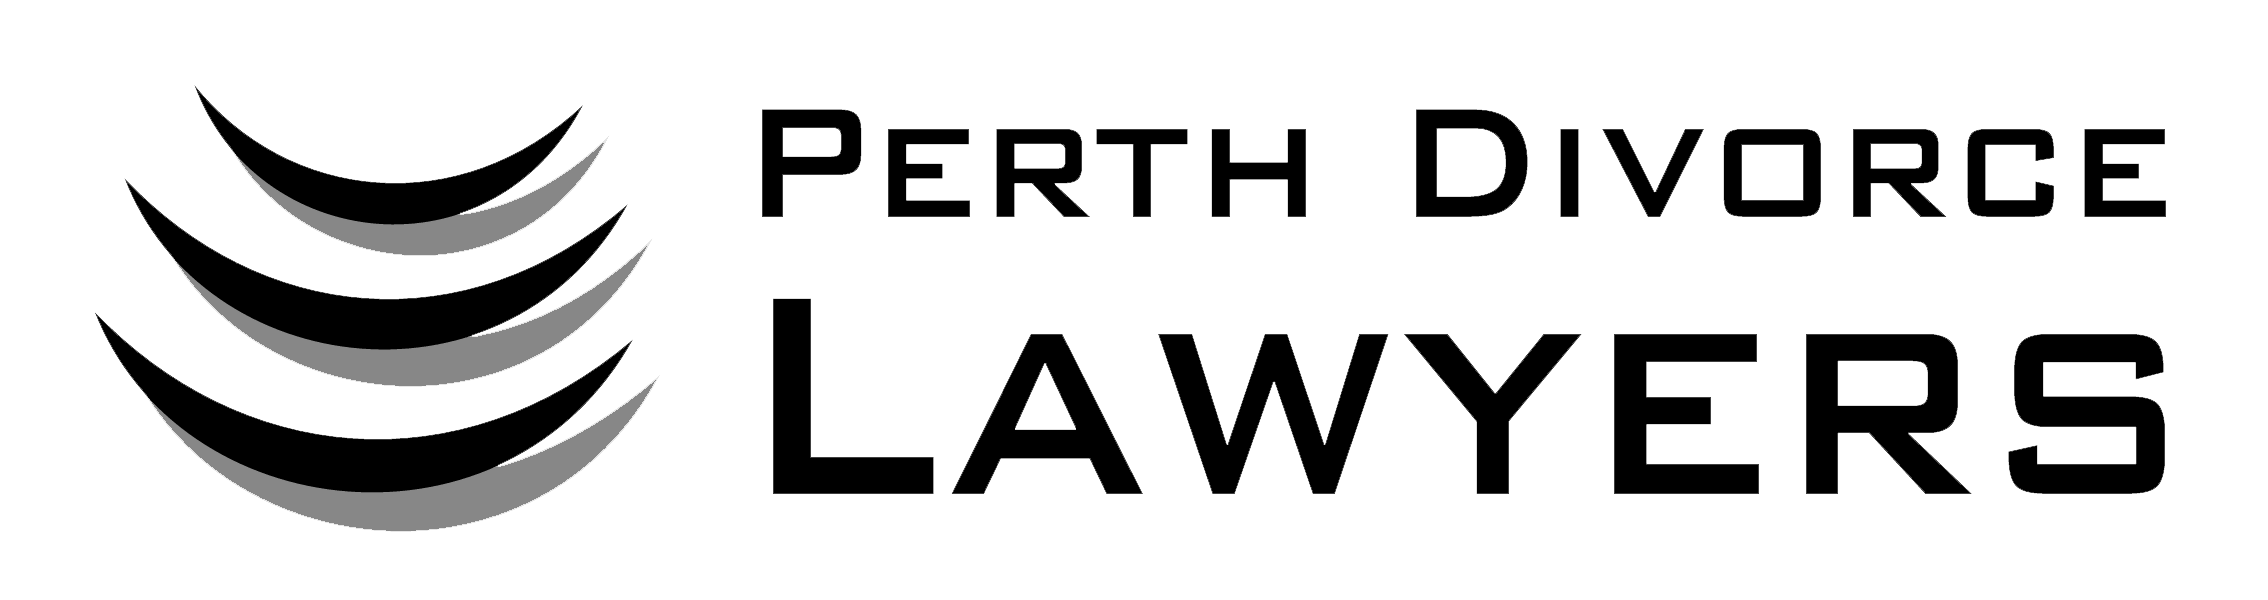 Perth Divorce Lawyers